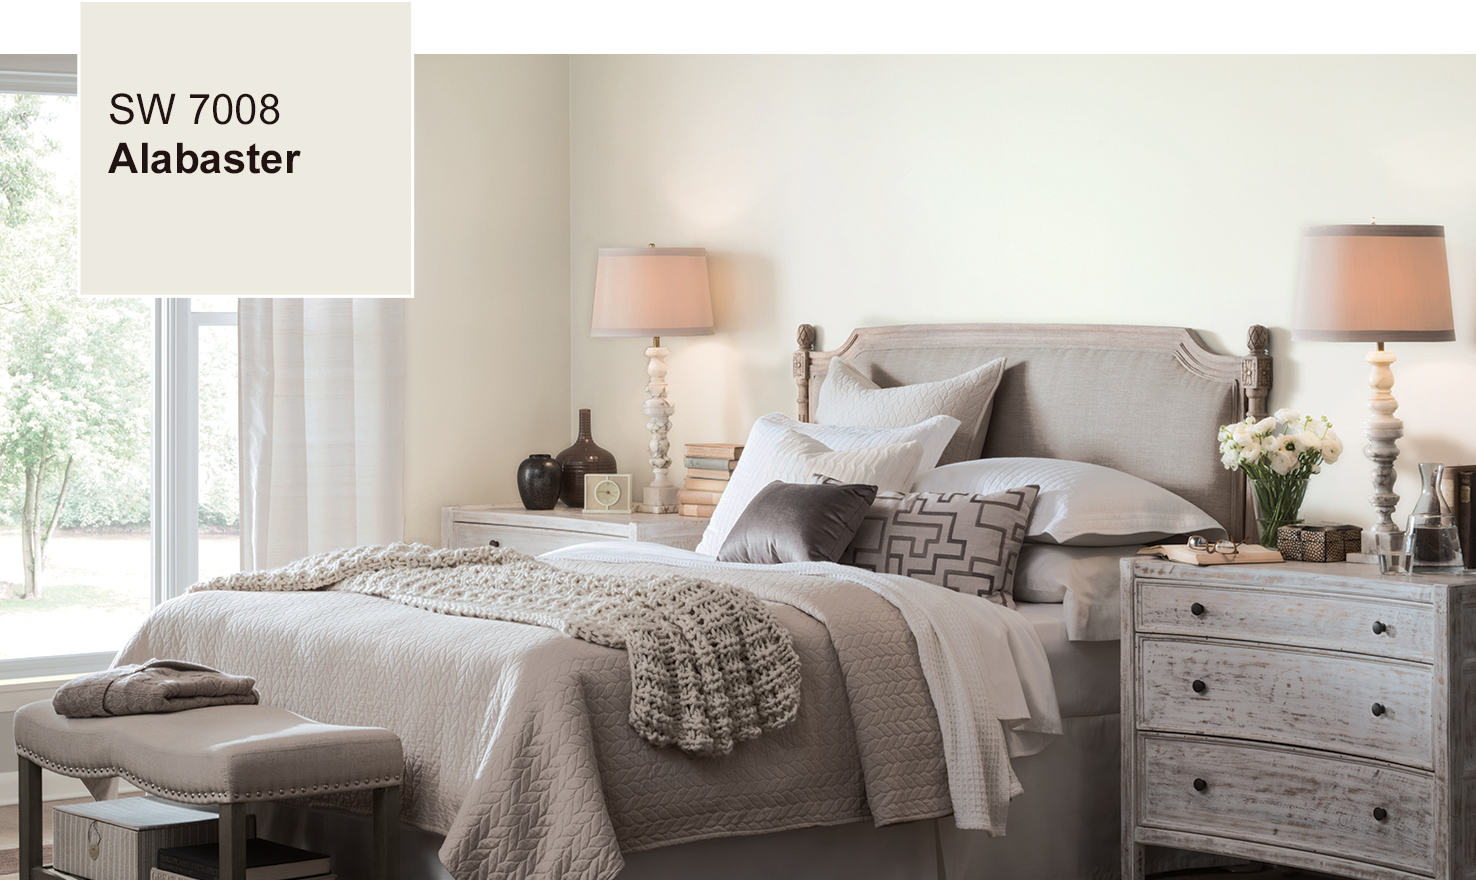 Sw 7008 Alabaster 2016 Color Of The Year Sherwin Williams